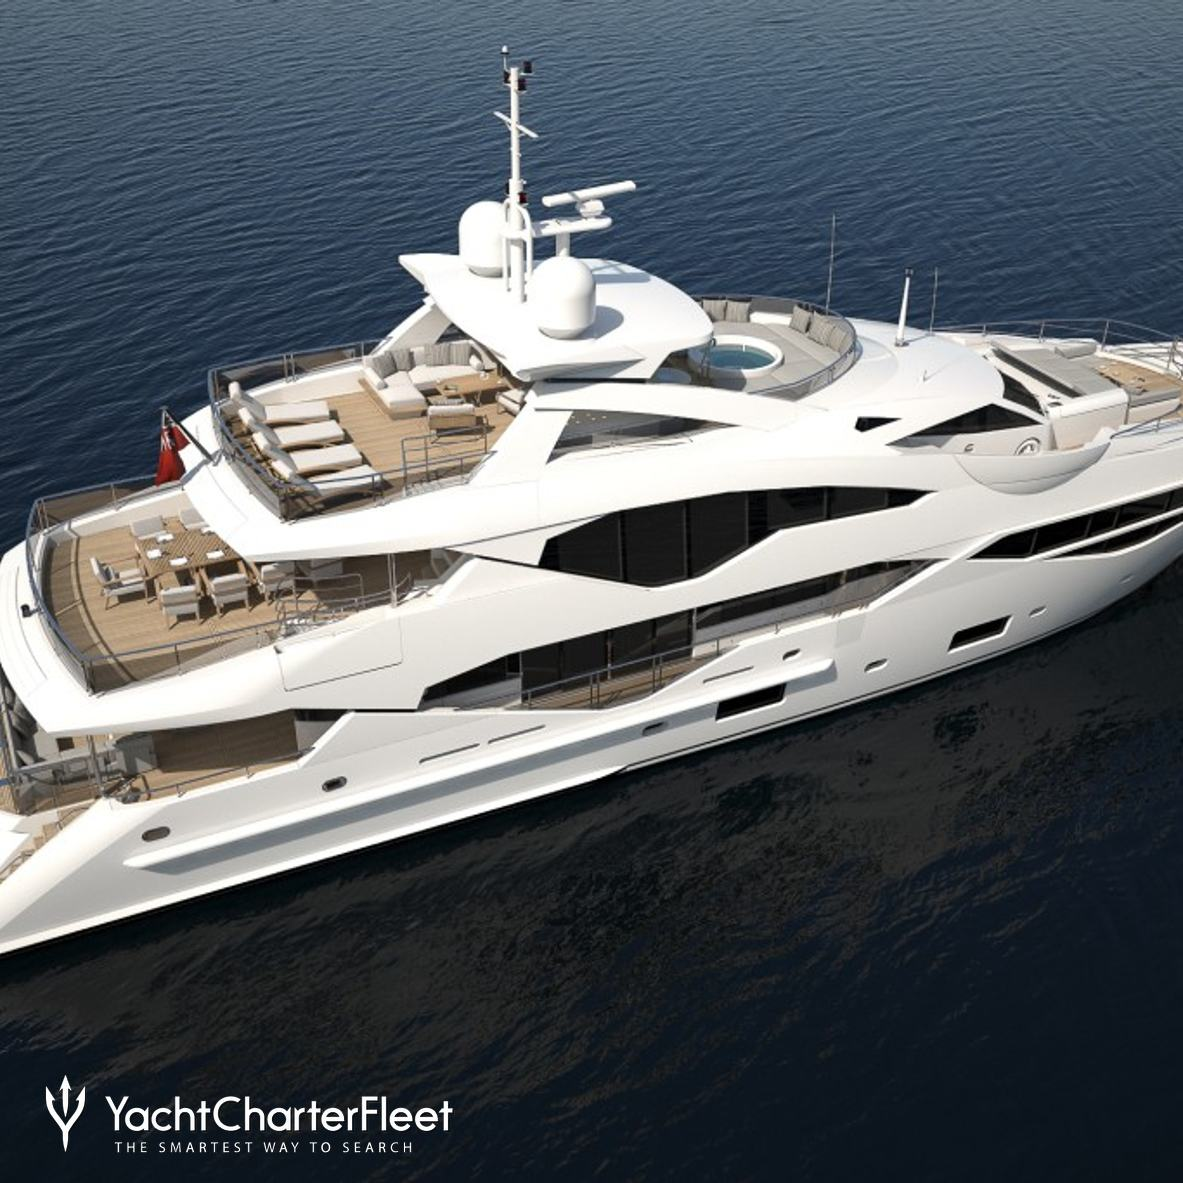 Jacozami Yacht Photos 40m Luxury Motor Yacht For Charter